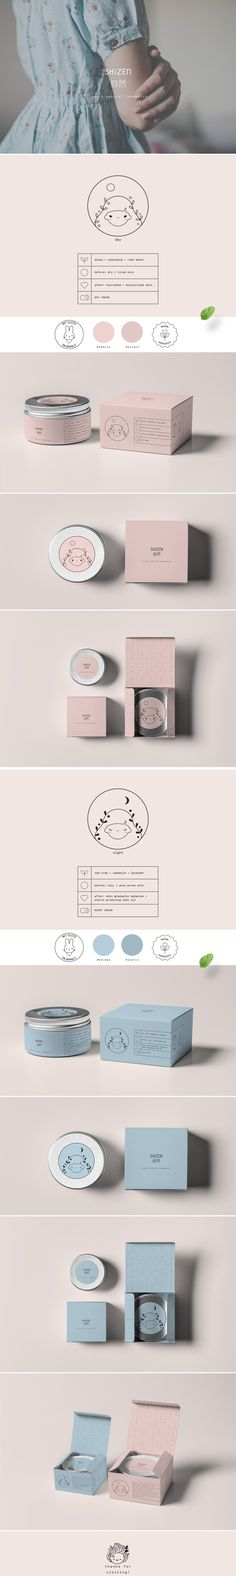 "SHIZEN - luxury natural cosmetic brand inspired by the Japanese word ""shizen"" means nature. Brand logo represents mother nature in day and night. Recipe of cosmetics is based on natural components like herbs, flowers and fruits extracts. SHIZEN cares abou…"